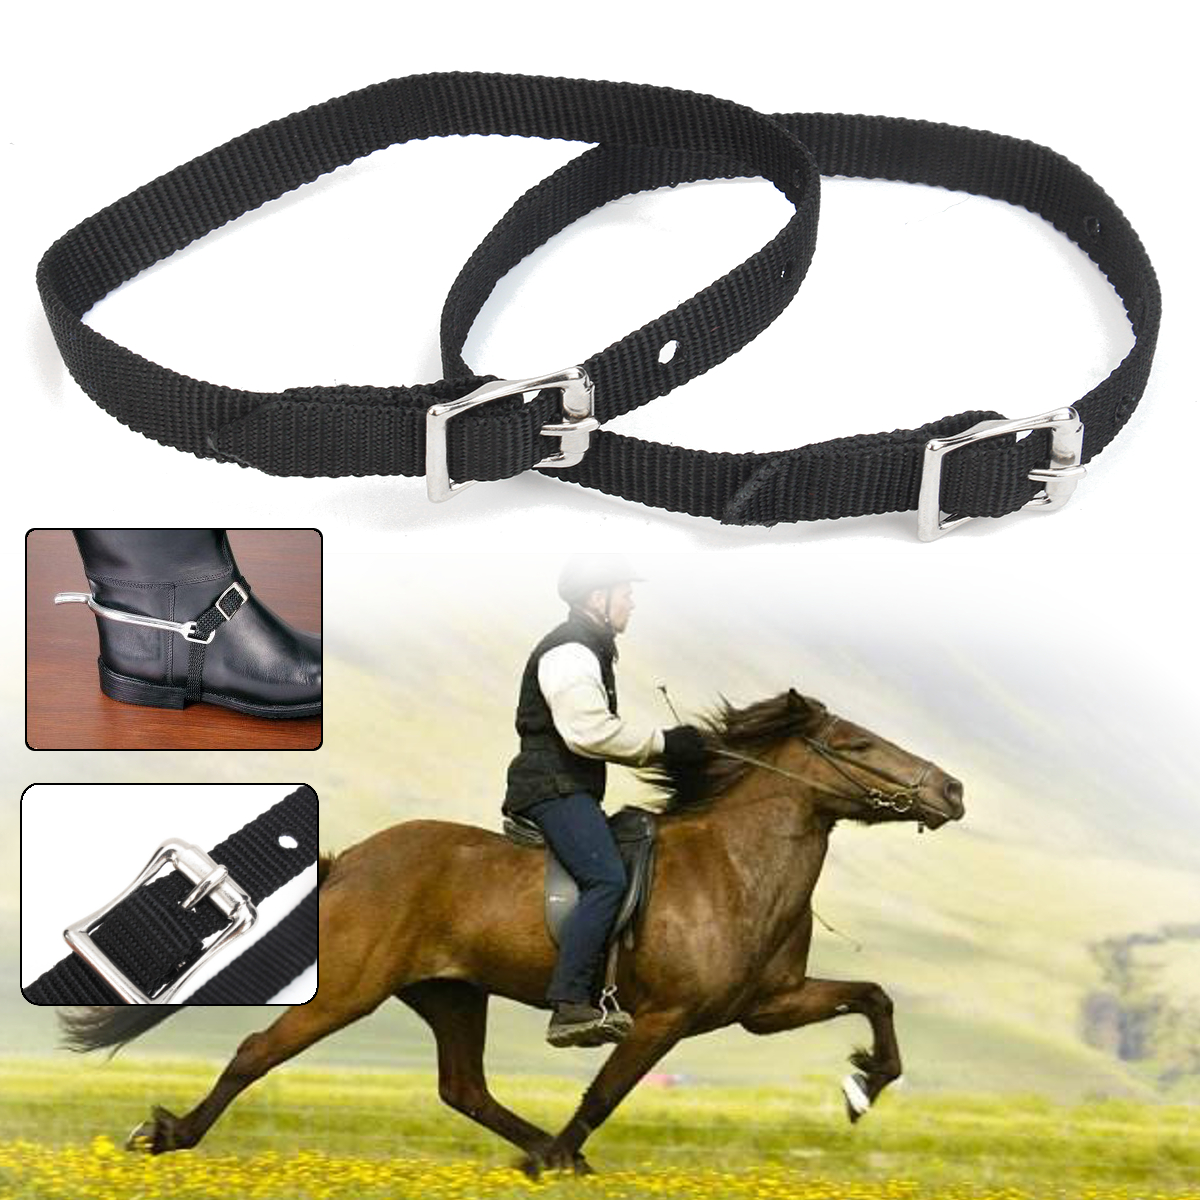 Western Harness Leather Spur Straps Mens Ladies Cowboy Horse Buckles Black